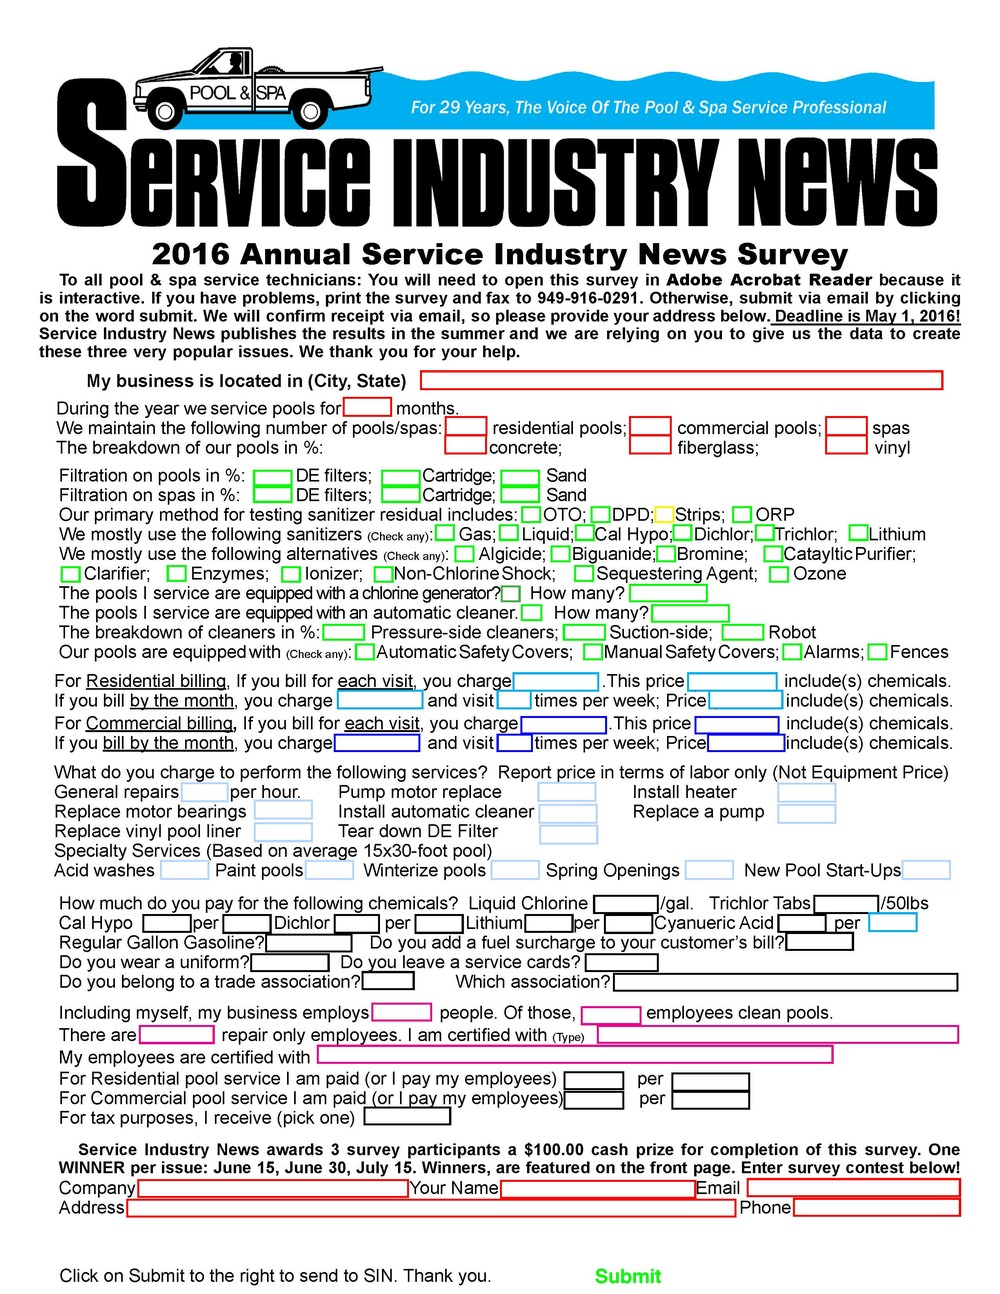 2016 Service Industry News Survey 10-7-15.png